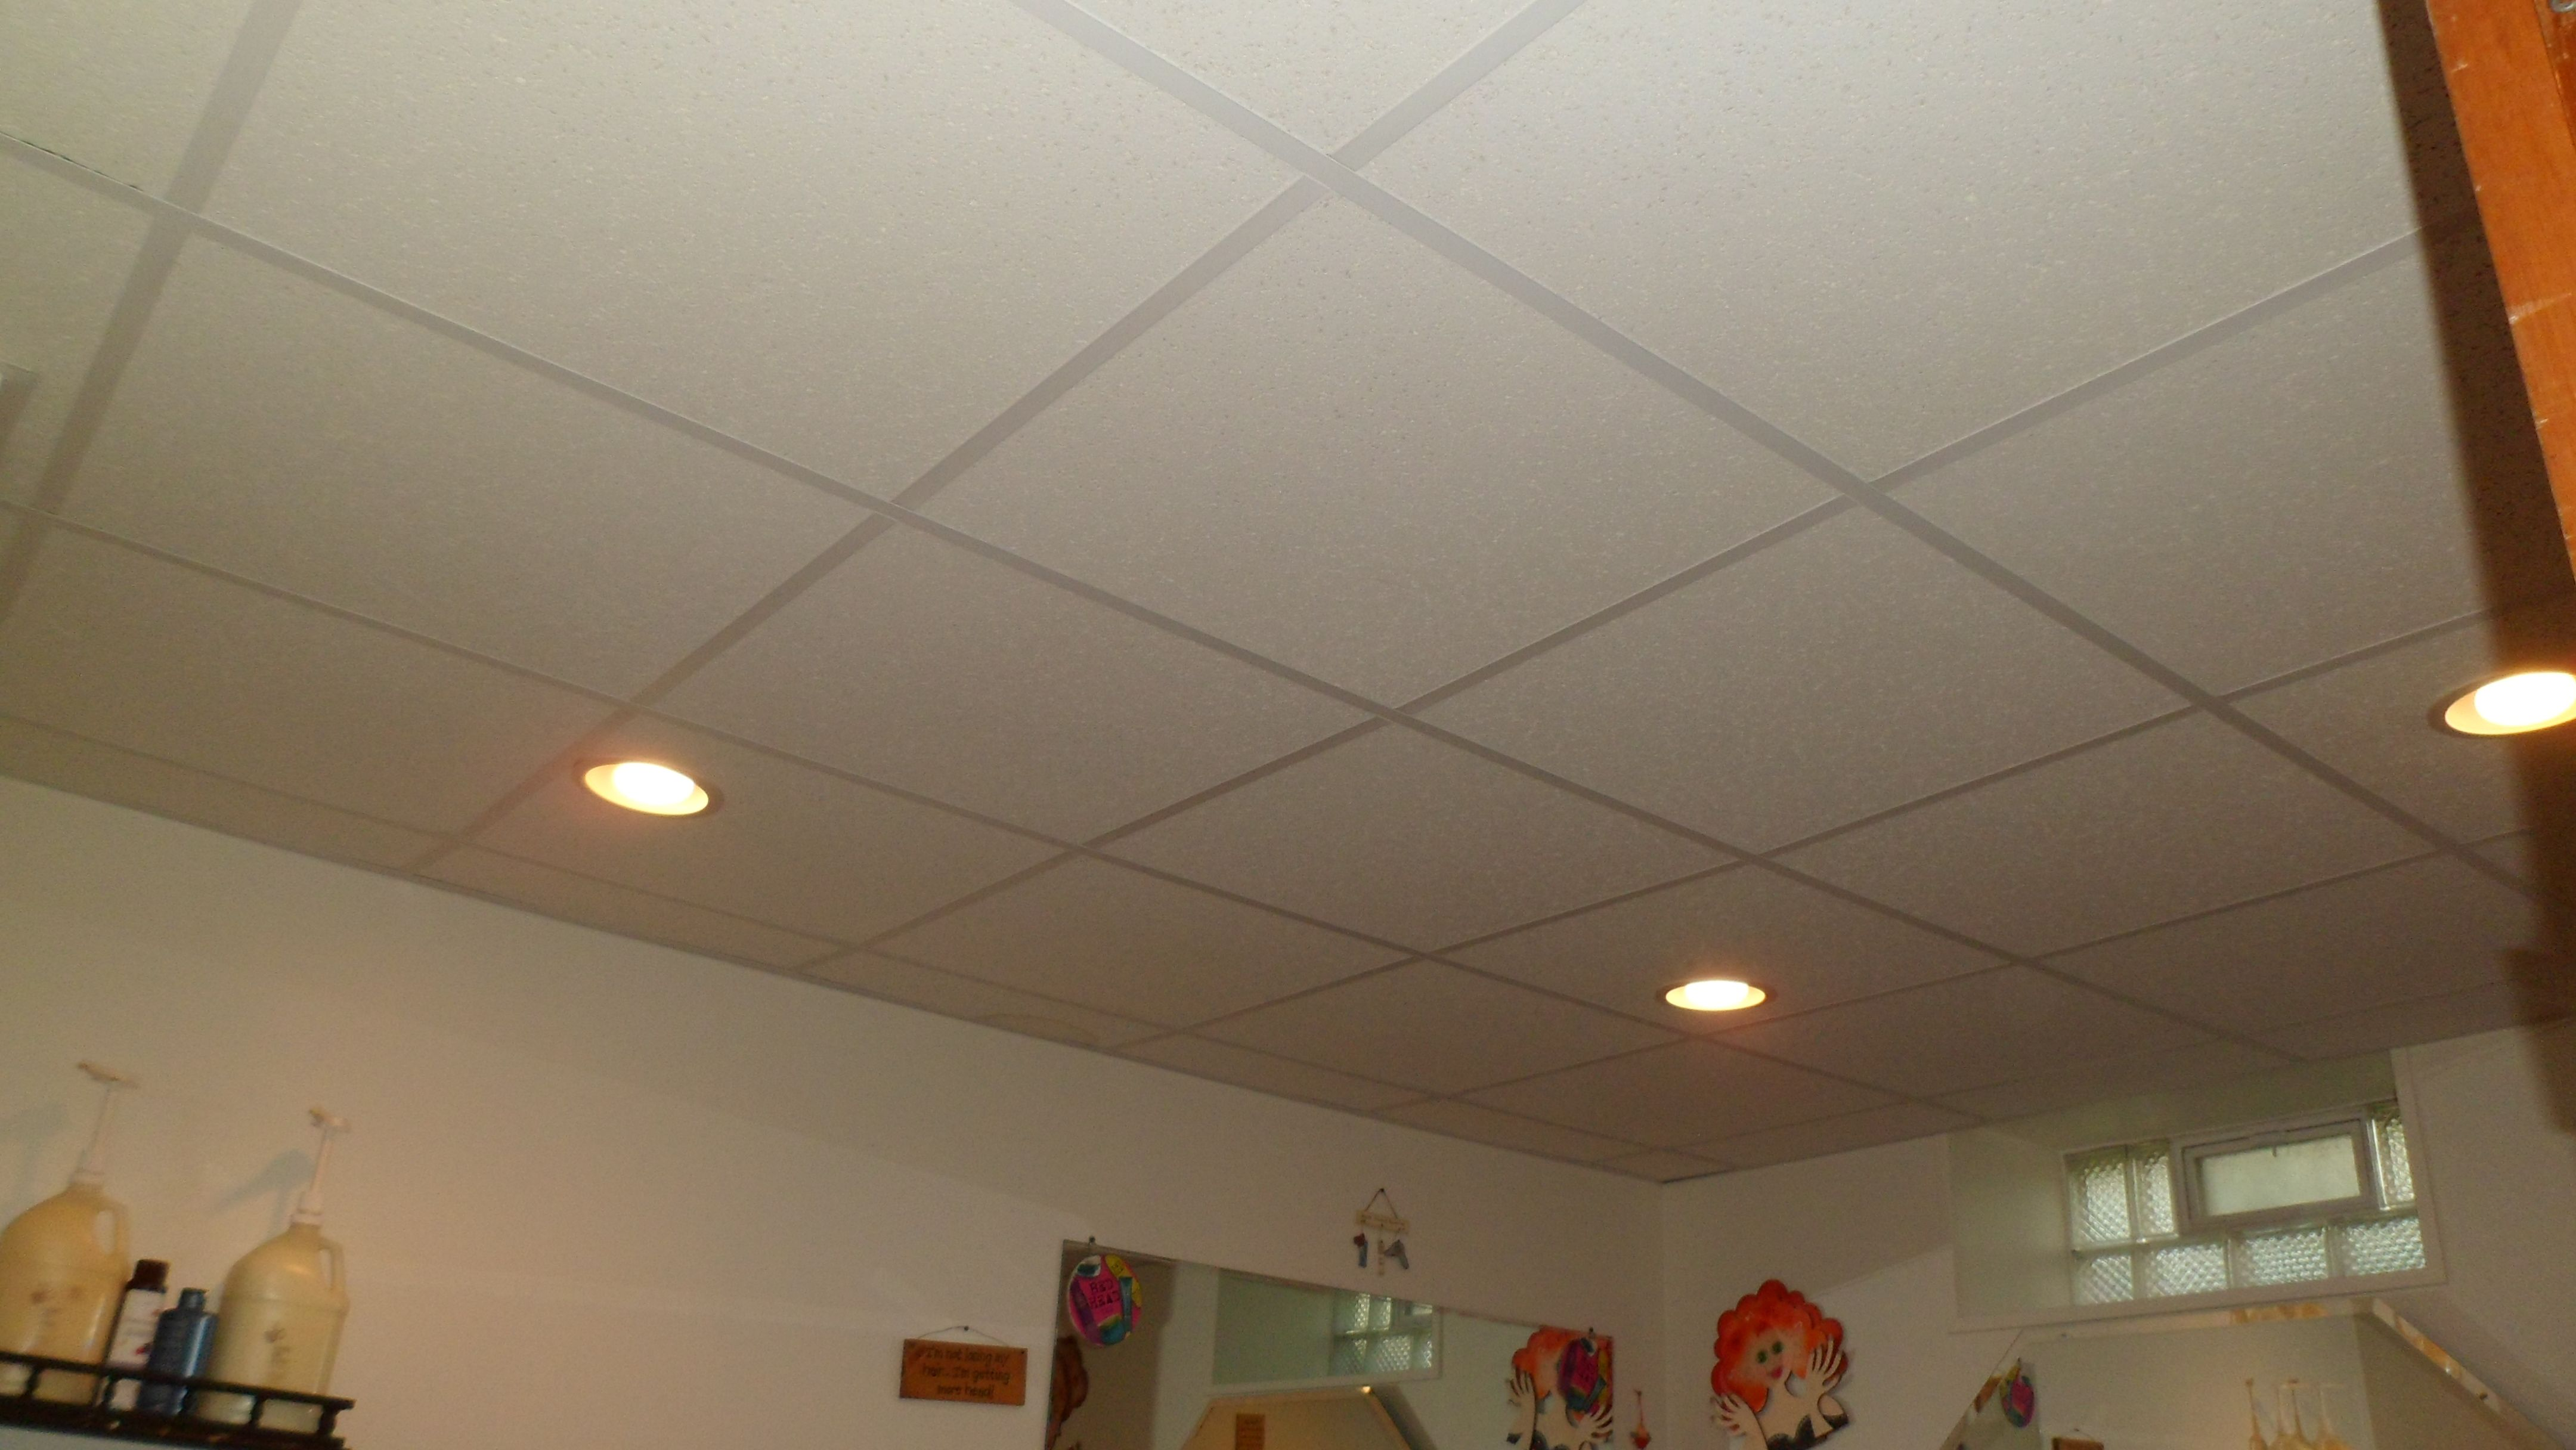 Drop ceiling recessed lights httpcreativechairsandtables drop ceiling recessed lights dailygadgetfo Choice Image